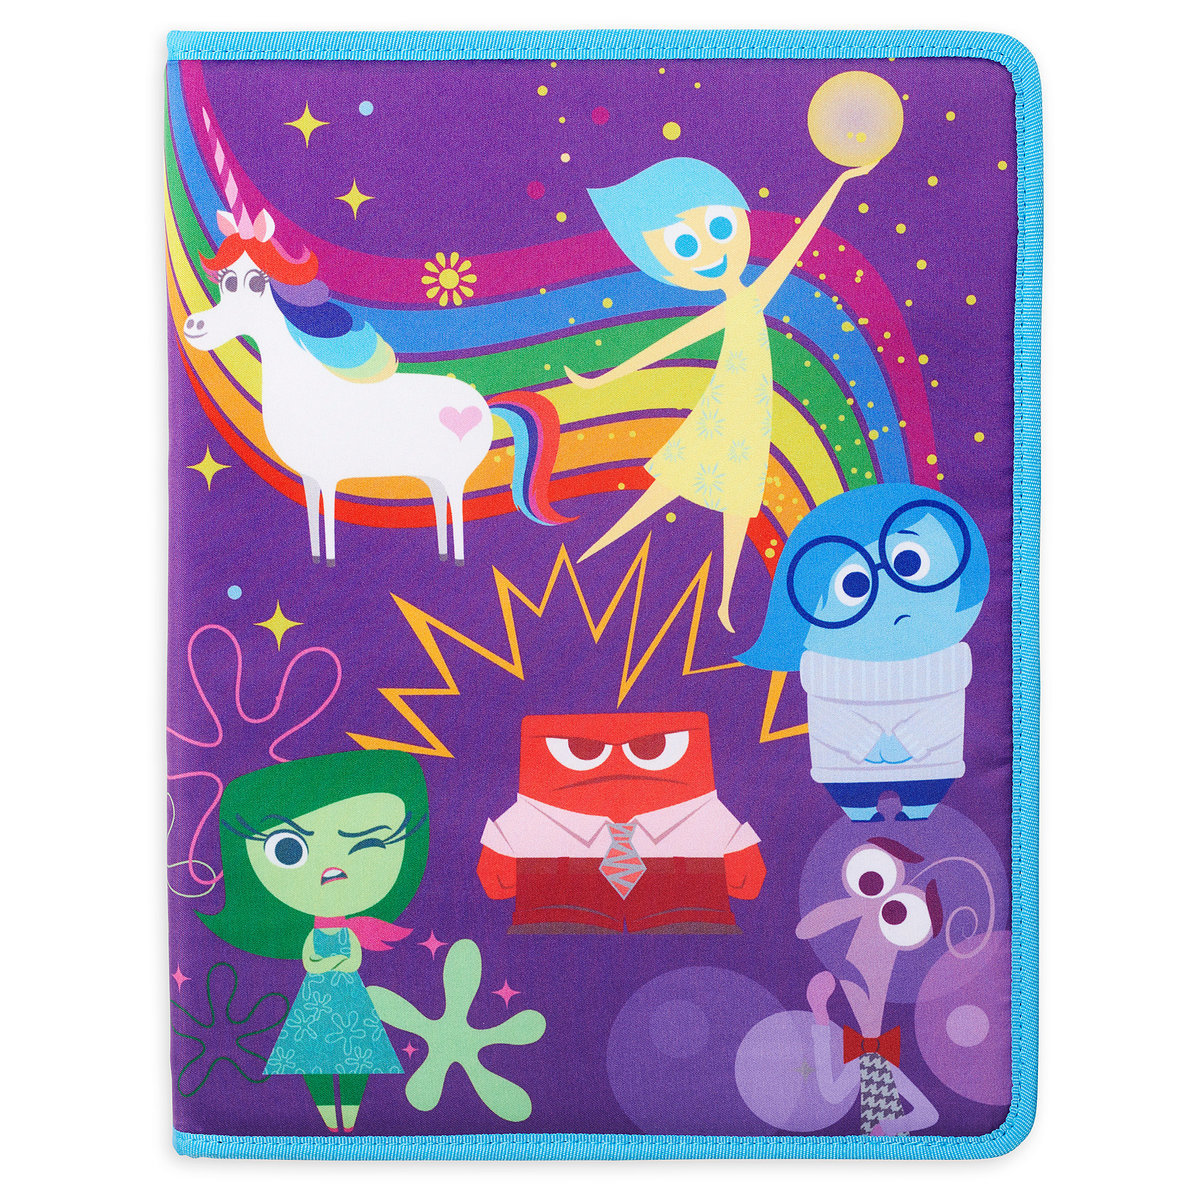 d9aaf0123f2 Product Image of PIXAR Inside Out Folio Organizer   1